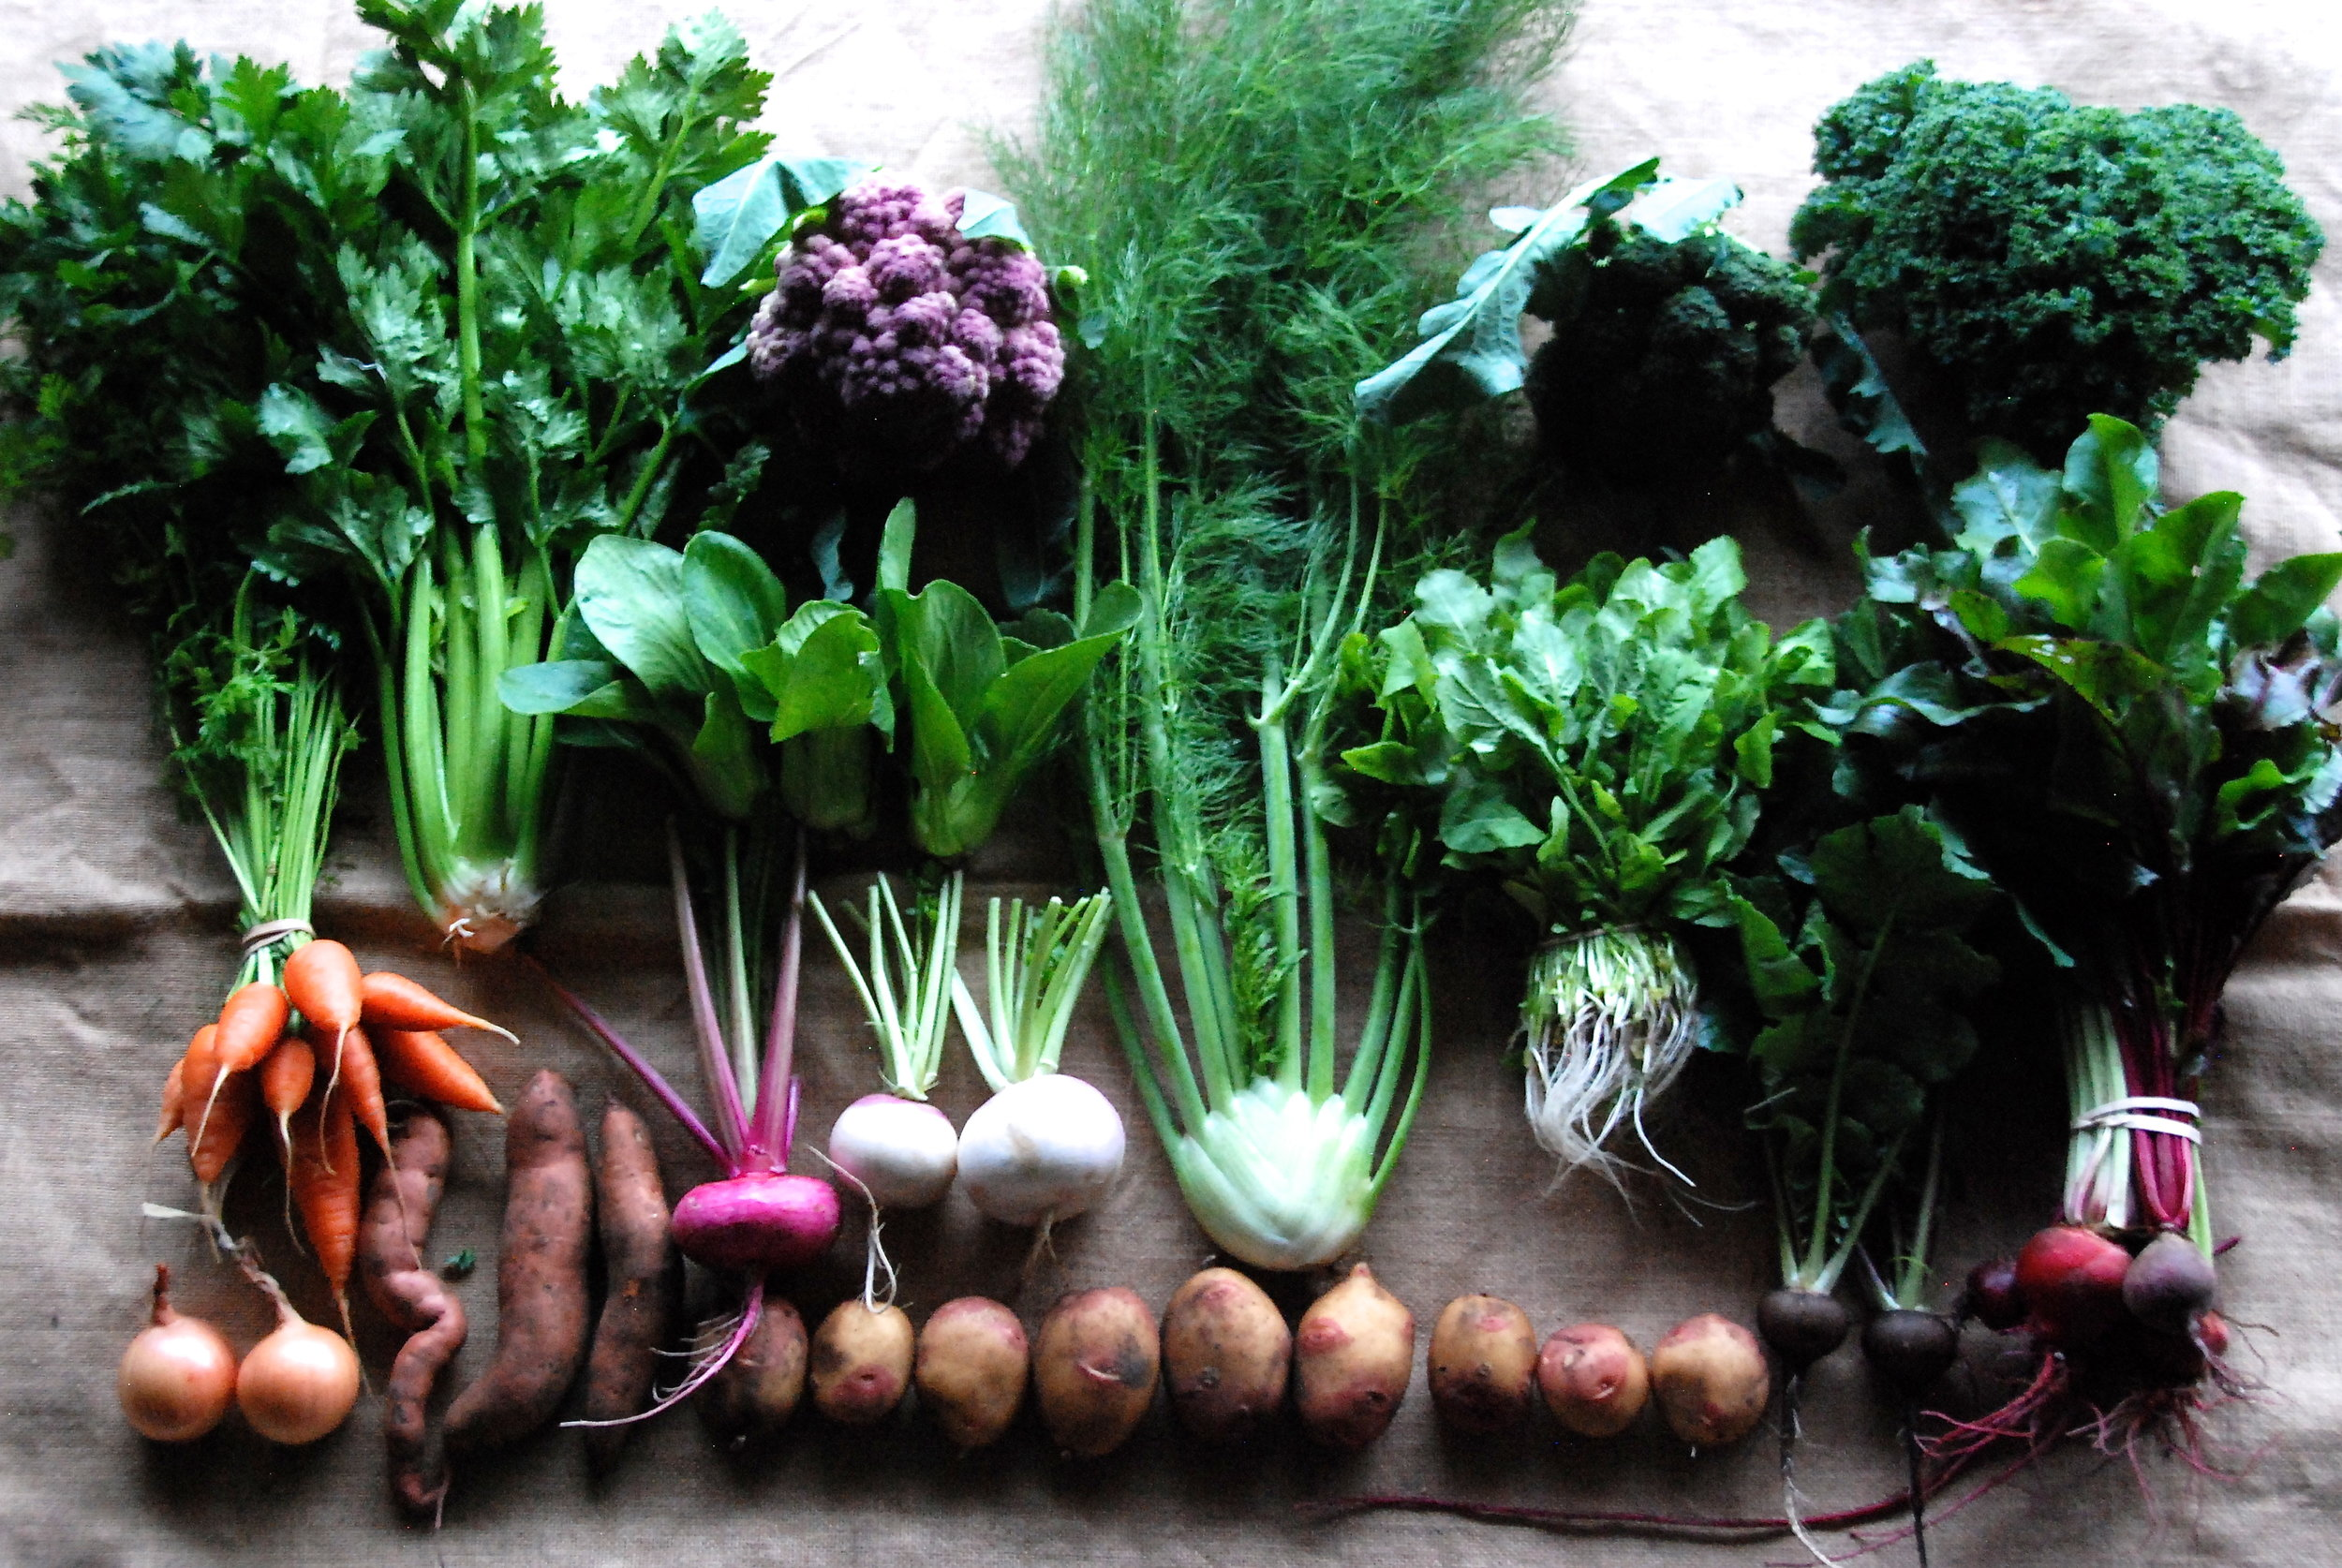 A randomly selected CSA share.